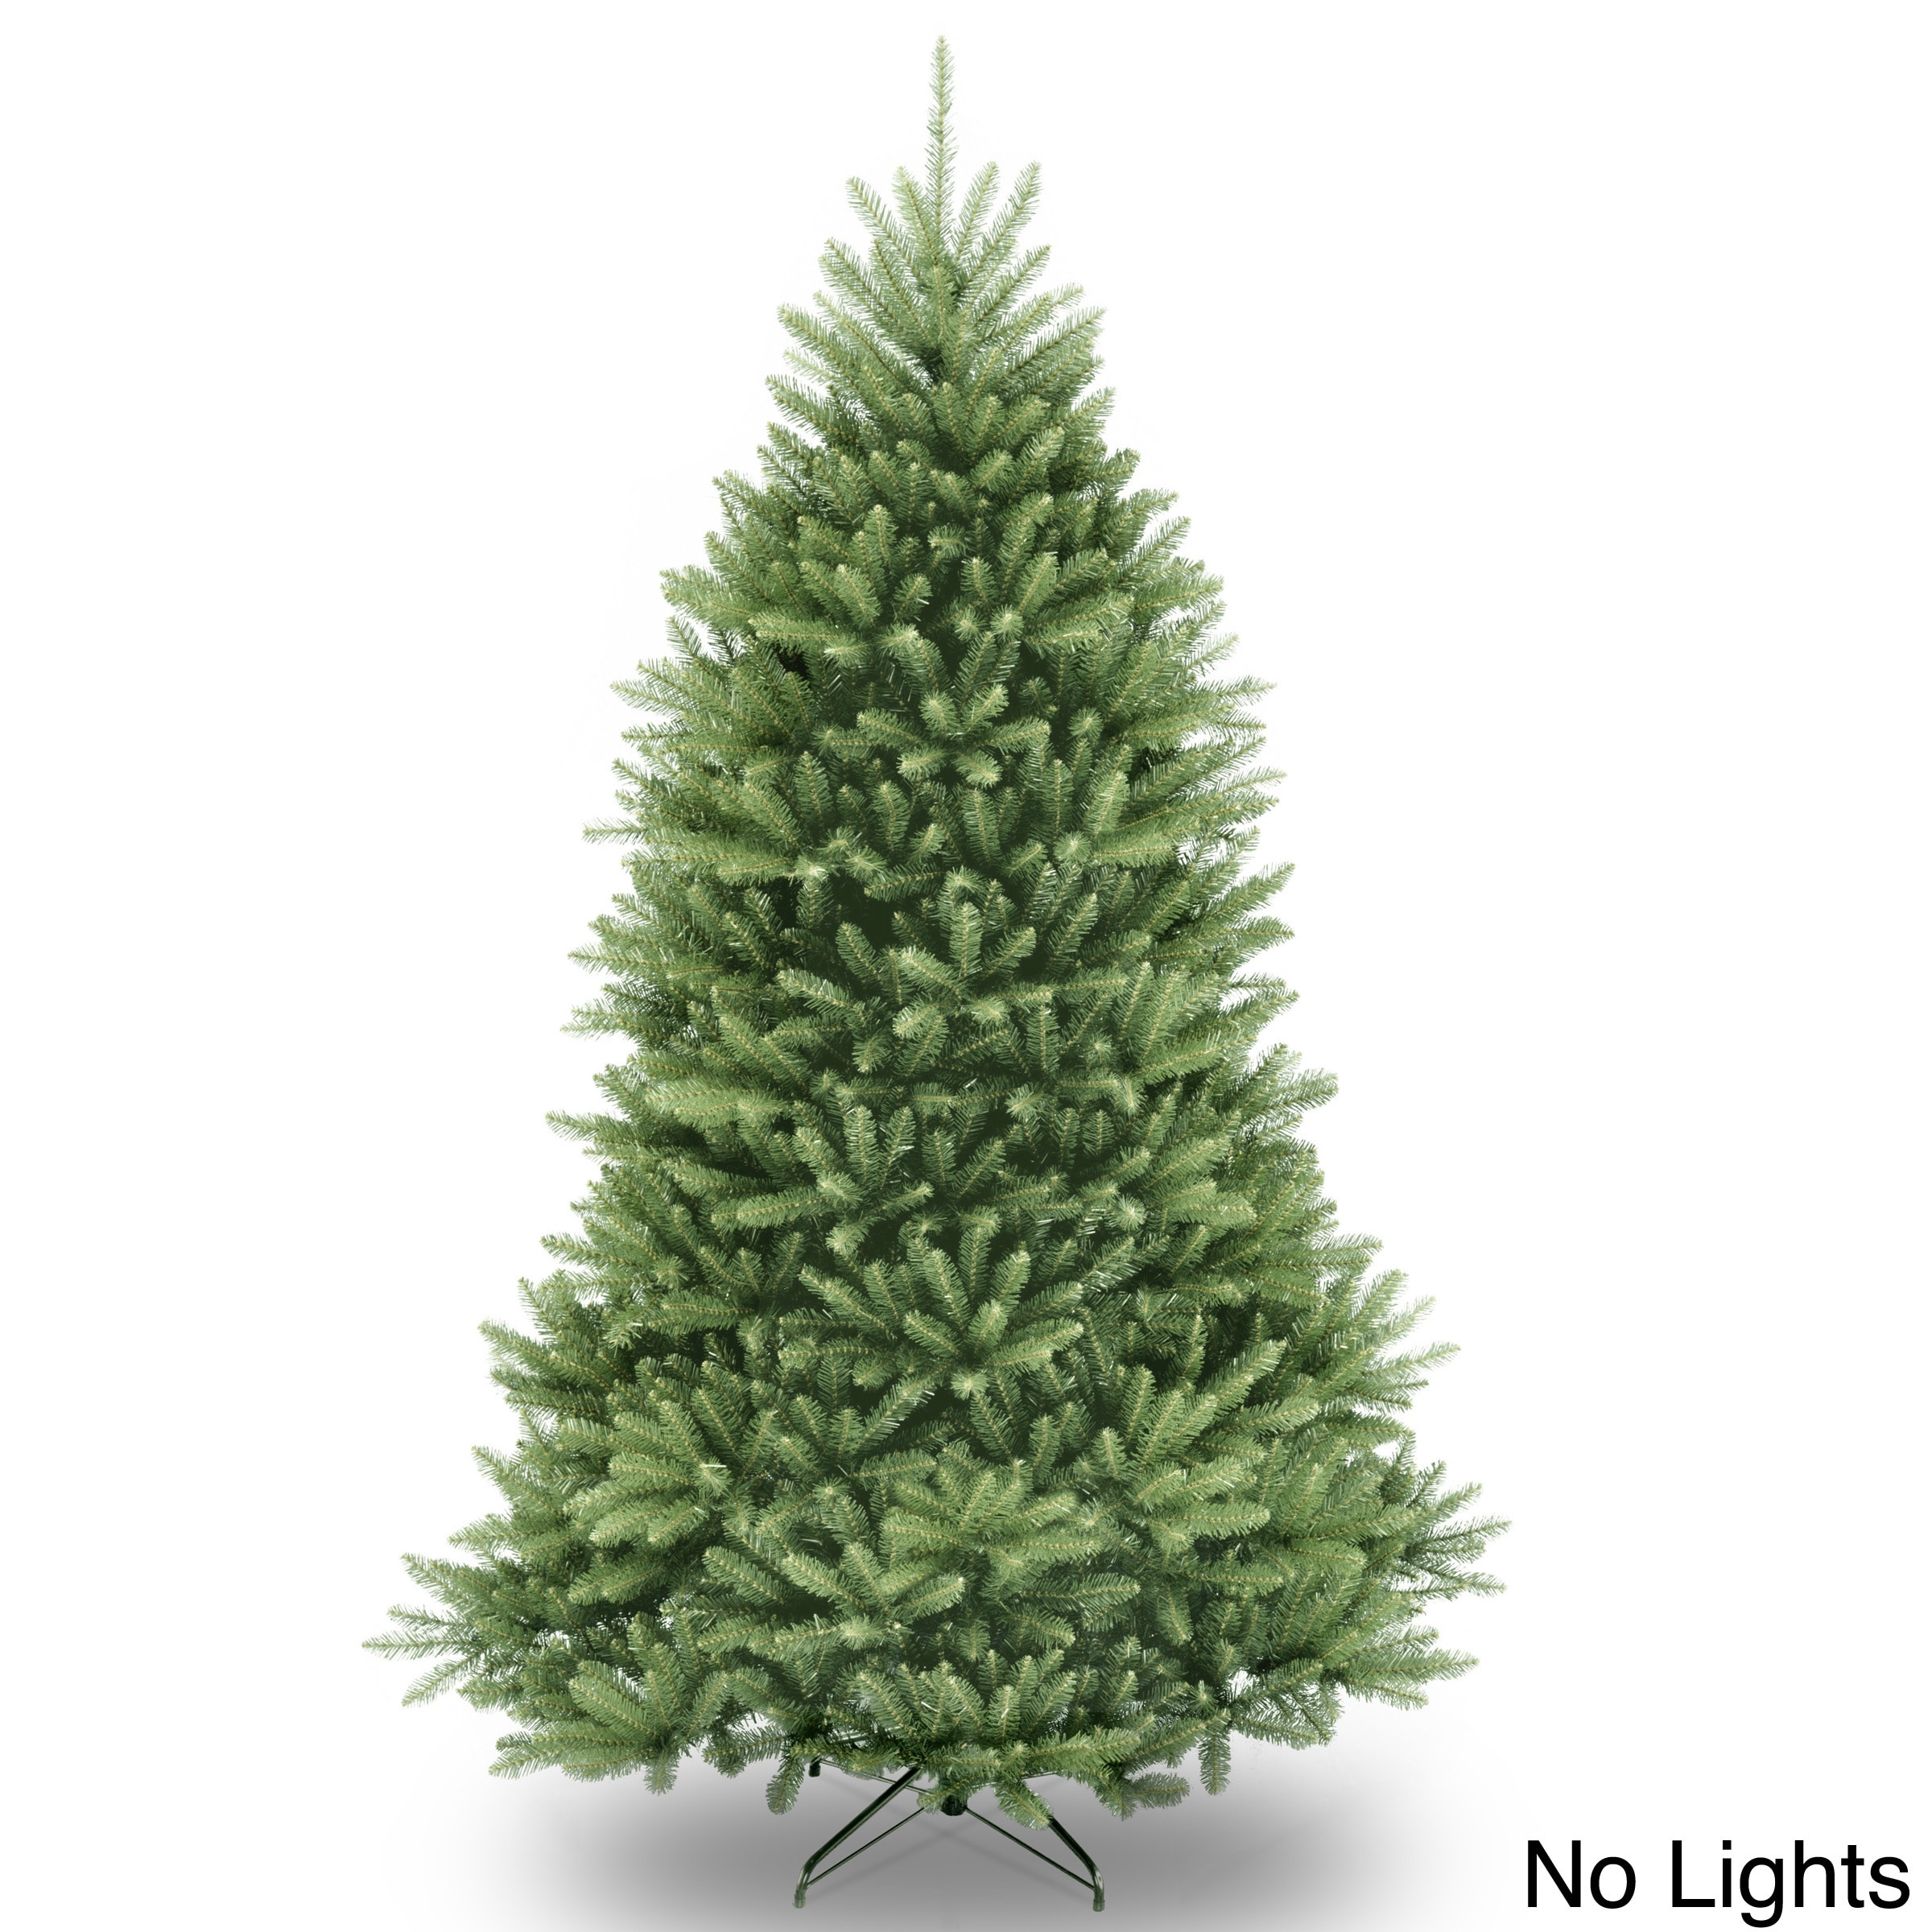 Christmas Tree Without Lights